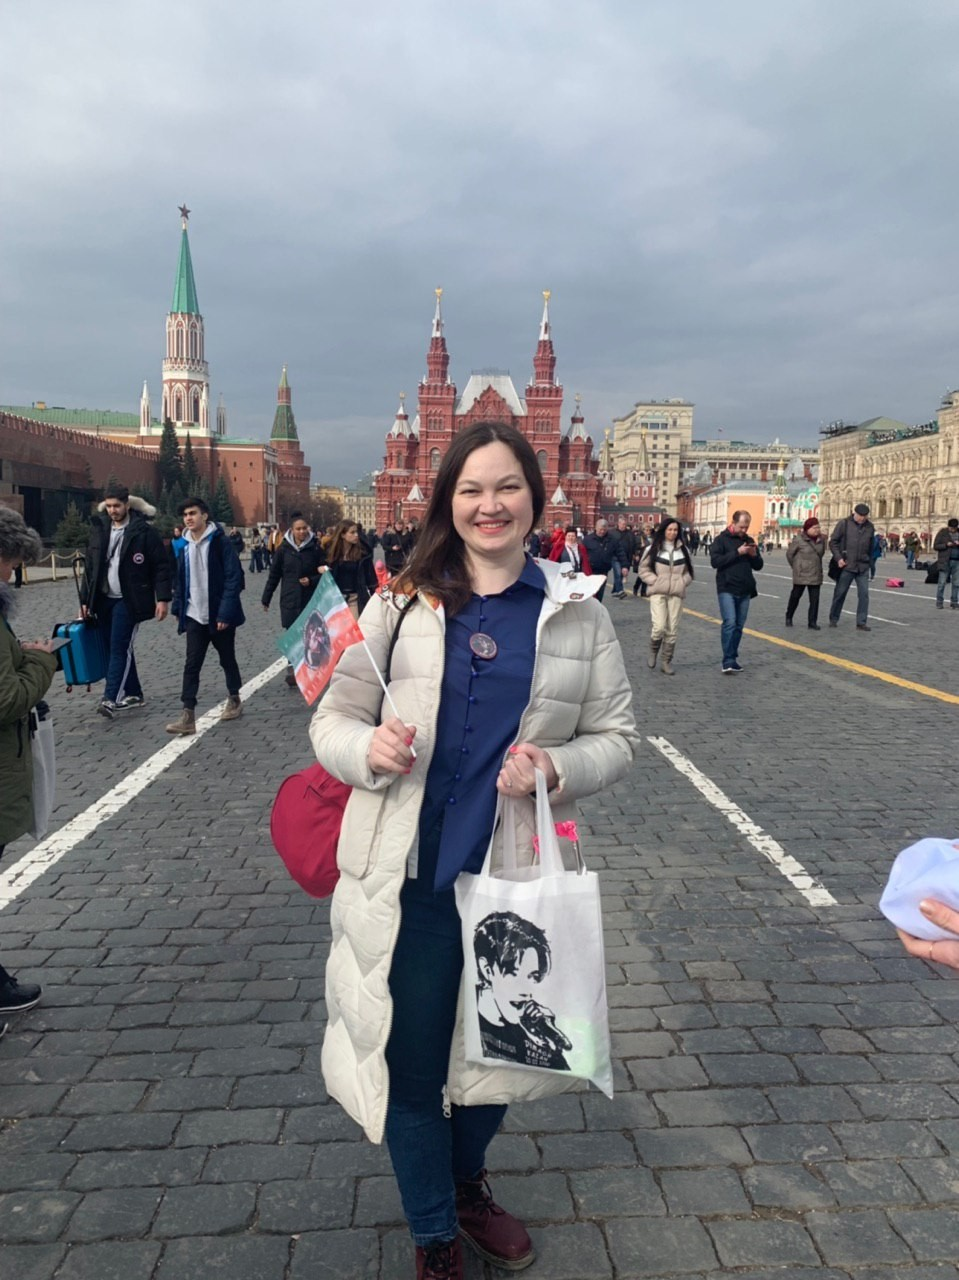 Dimash's fans marched on the Red Square in Moscow